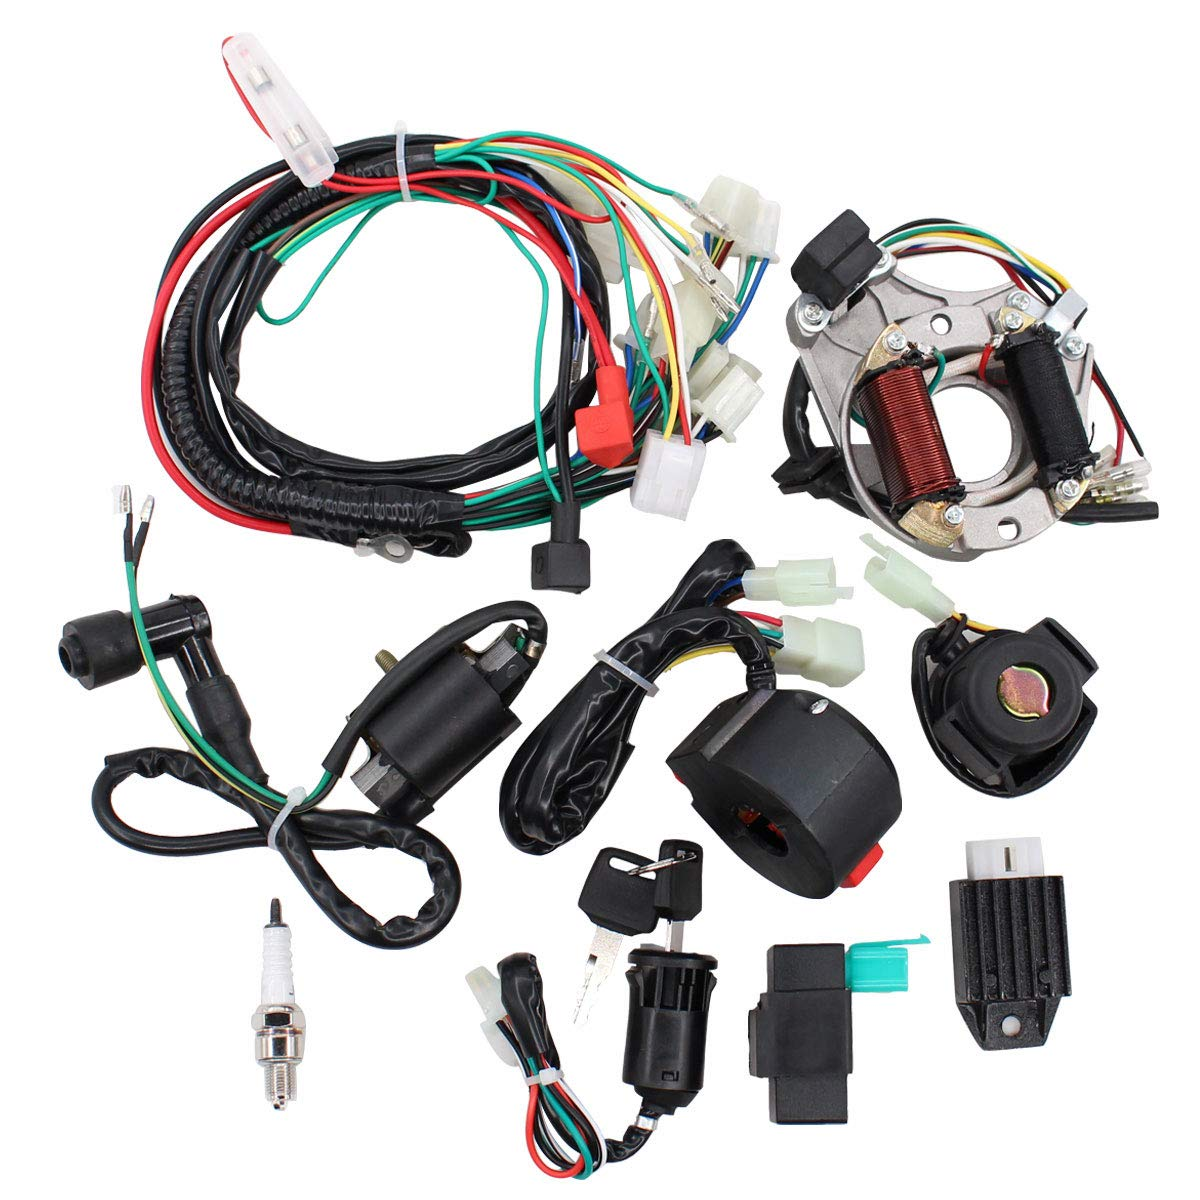 ApplianPar Electrics Start Engine CDI Ignition Coil Wiring Harness Kit CDI Wire Spark Plug Assembly for 4 Stroke ATV KLX 50cc 70cc 110cc 125cc Go Kart Quad Bike Buggy